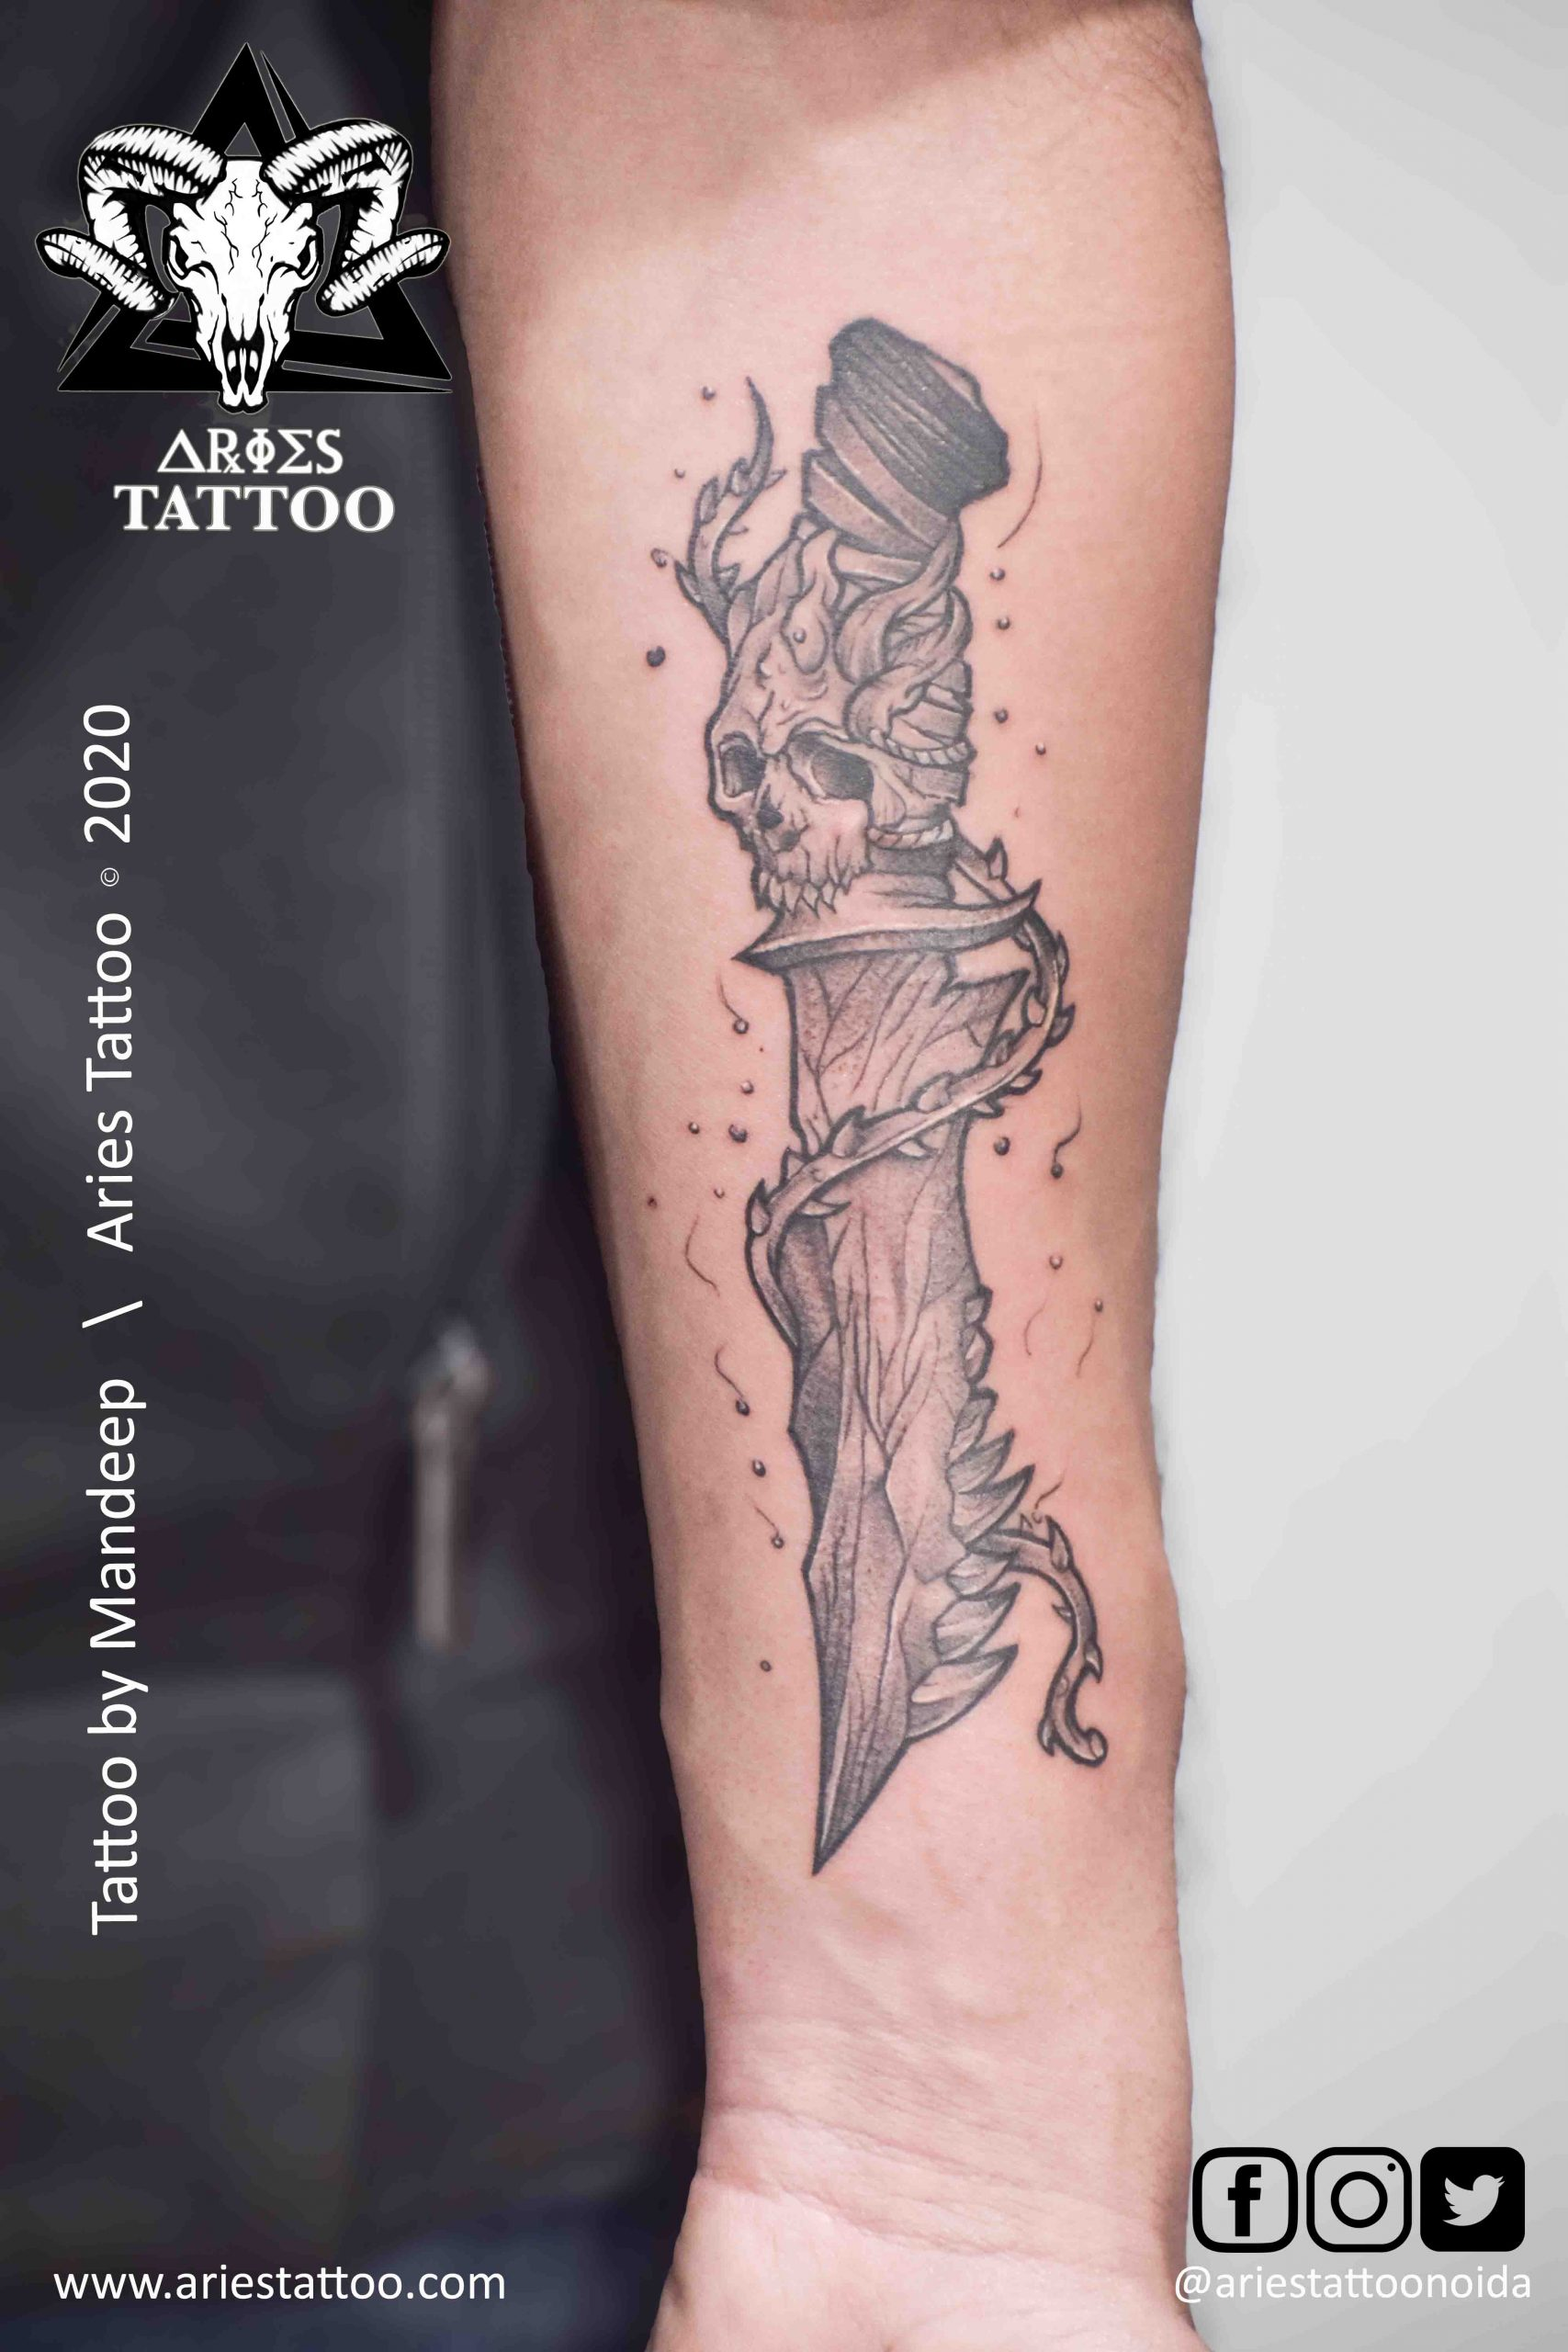 Custom knife skull Tattoo mandeep | |Aries Tattoo Noida | Tattoo Shop and Studio In Noida